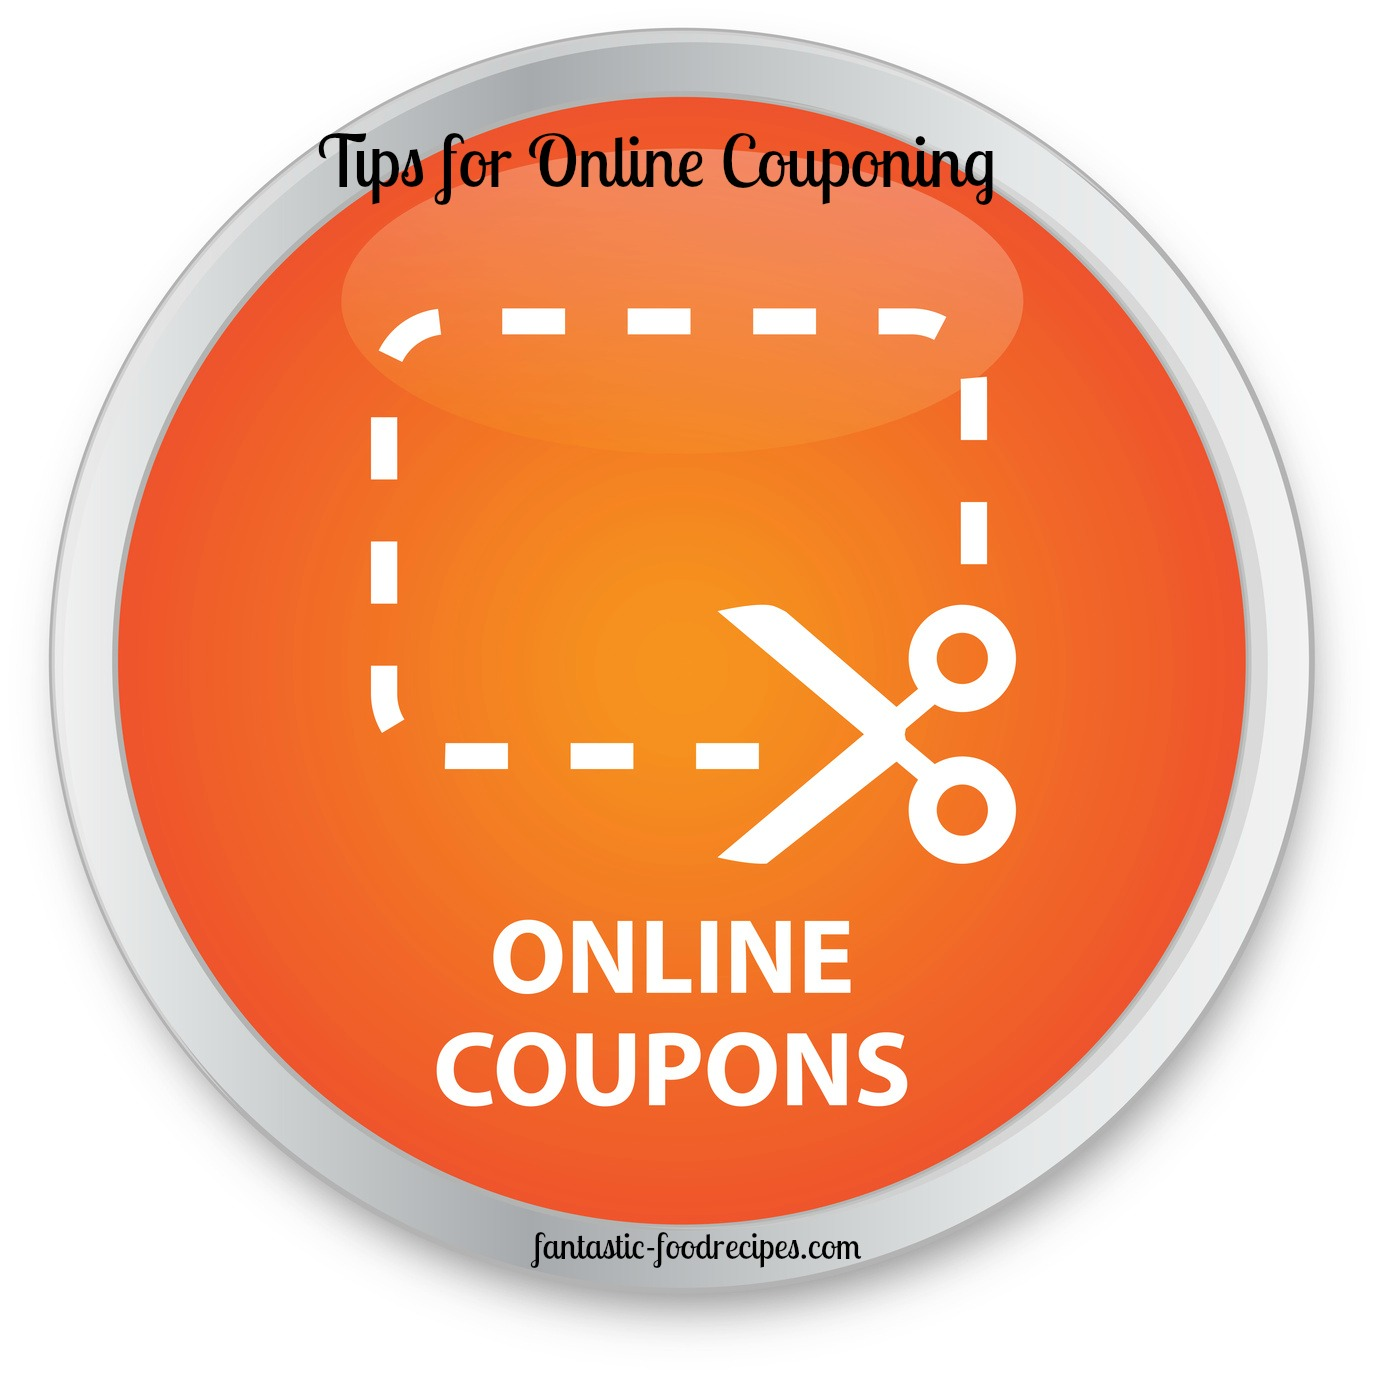 tips for online couponing